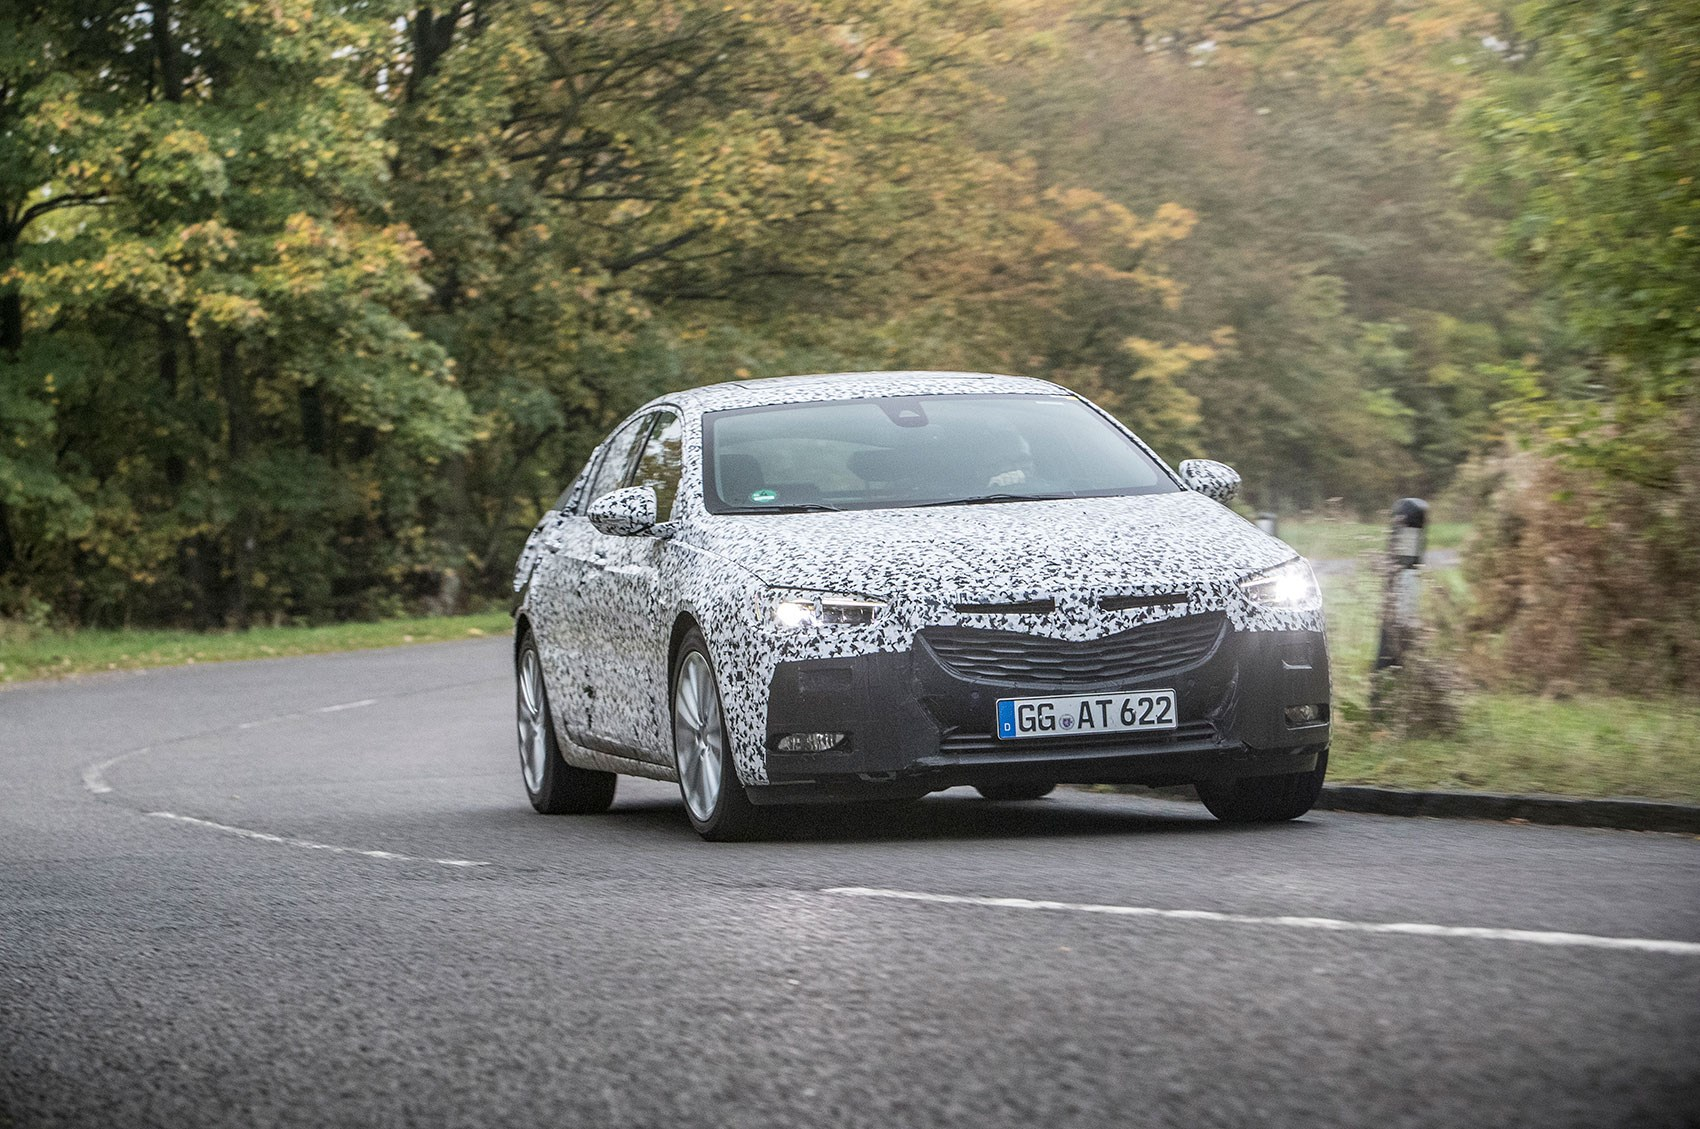 vauxhall insignia grand sport 2017 prototype review by car magazine. Black Bedroom Furniture Sets. Home Design Ideas